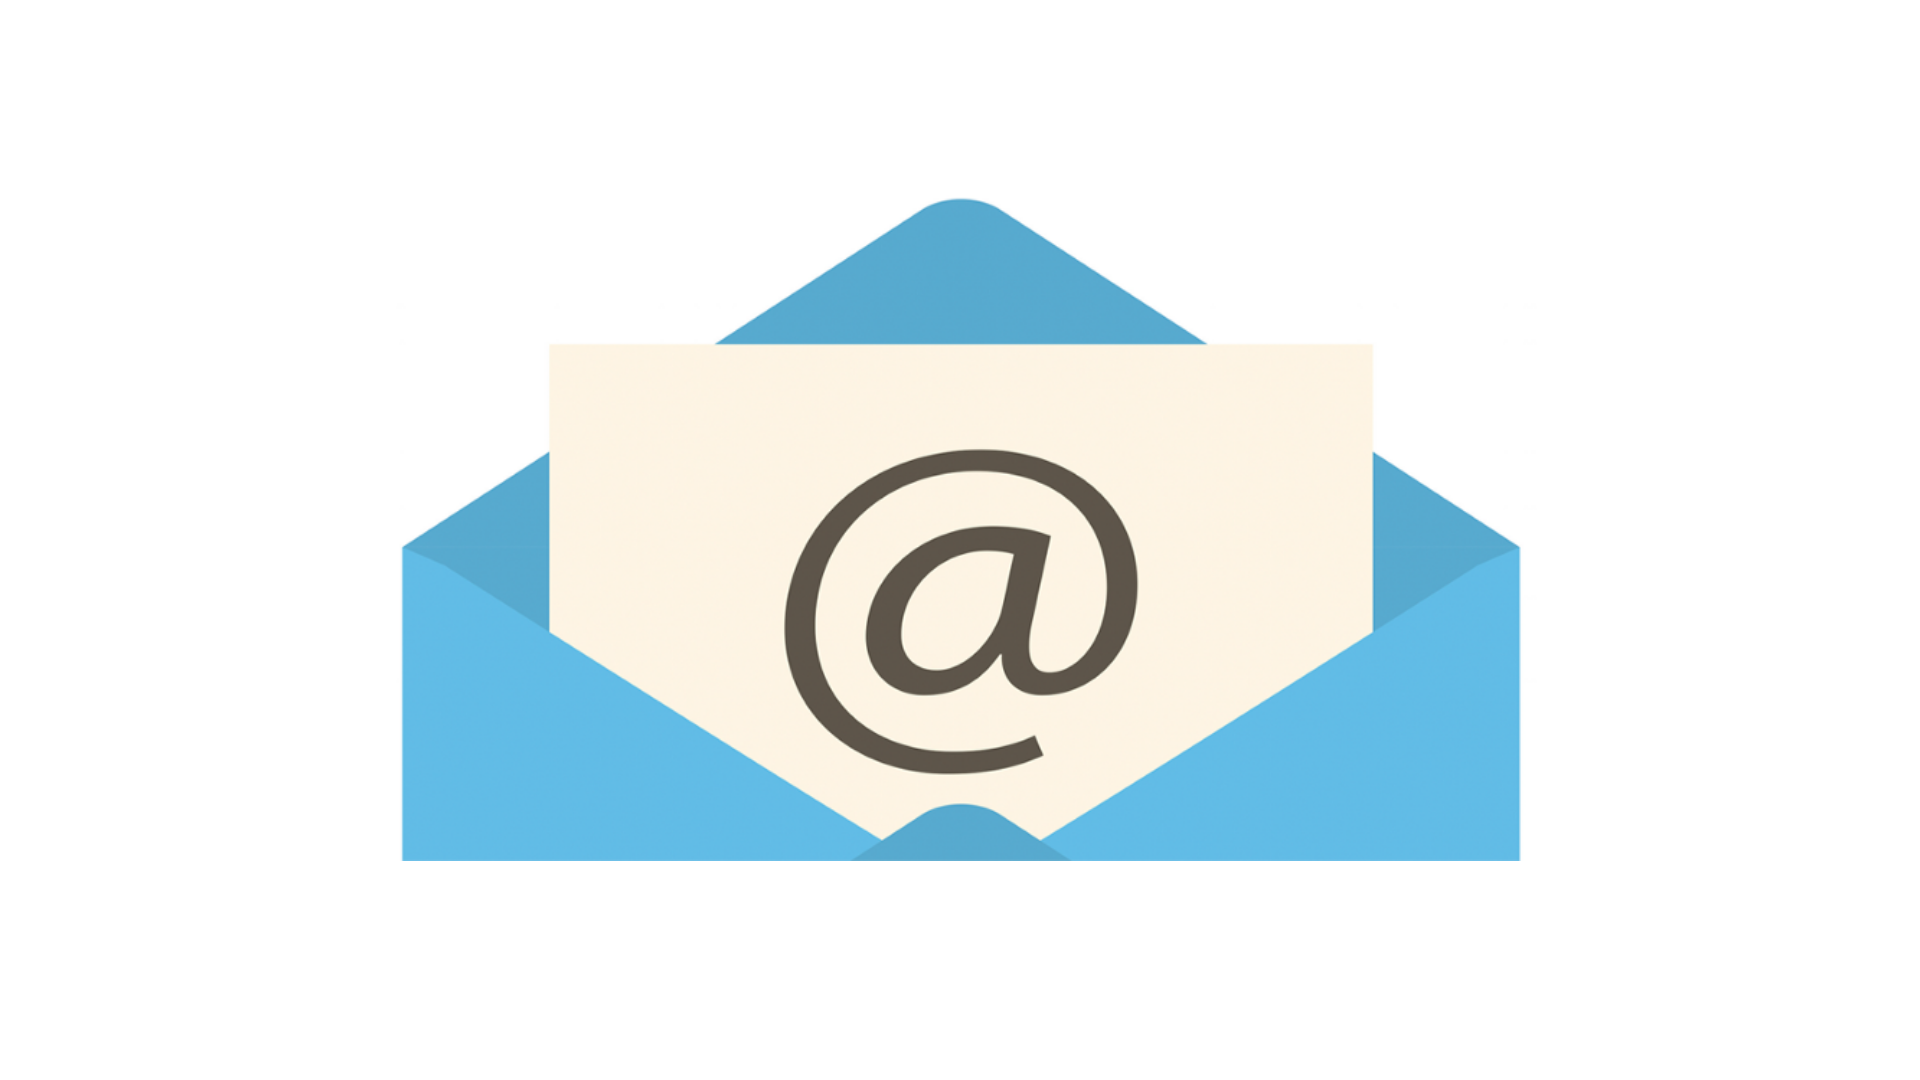 Como visualizar e-mails com ActionMailer::Preview